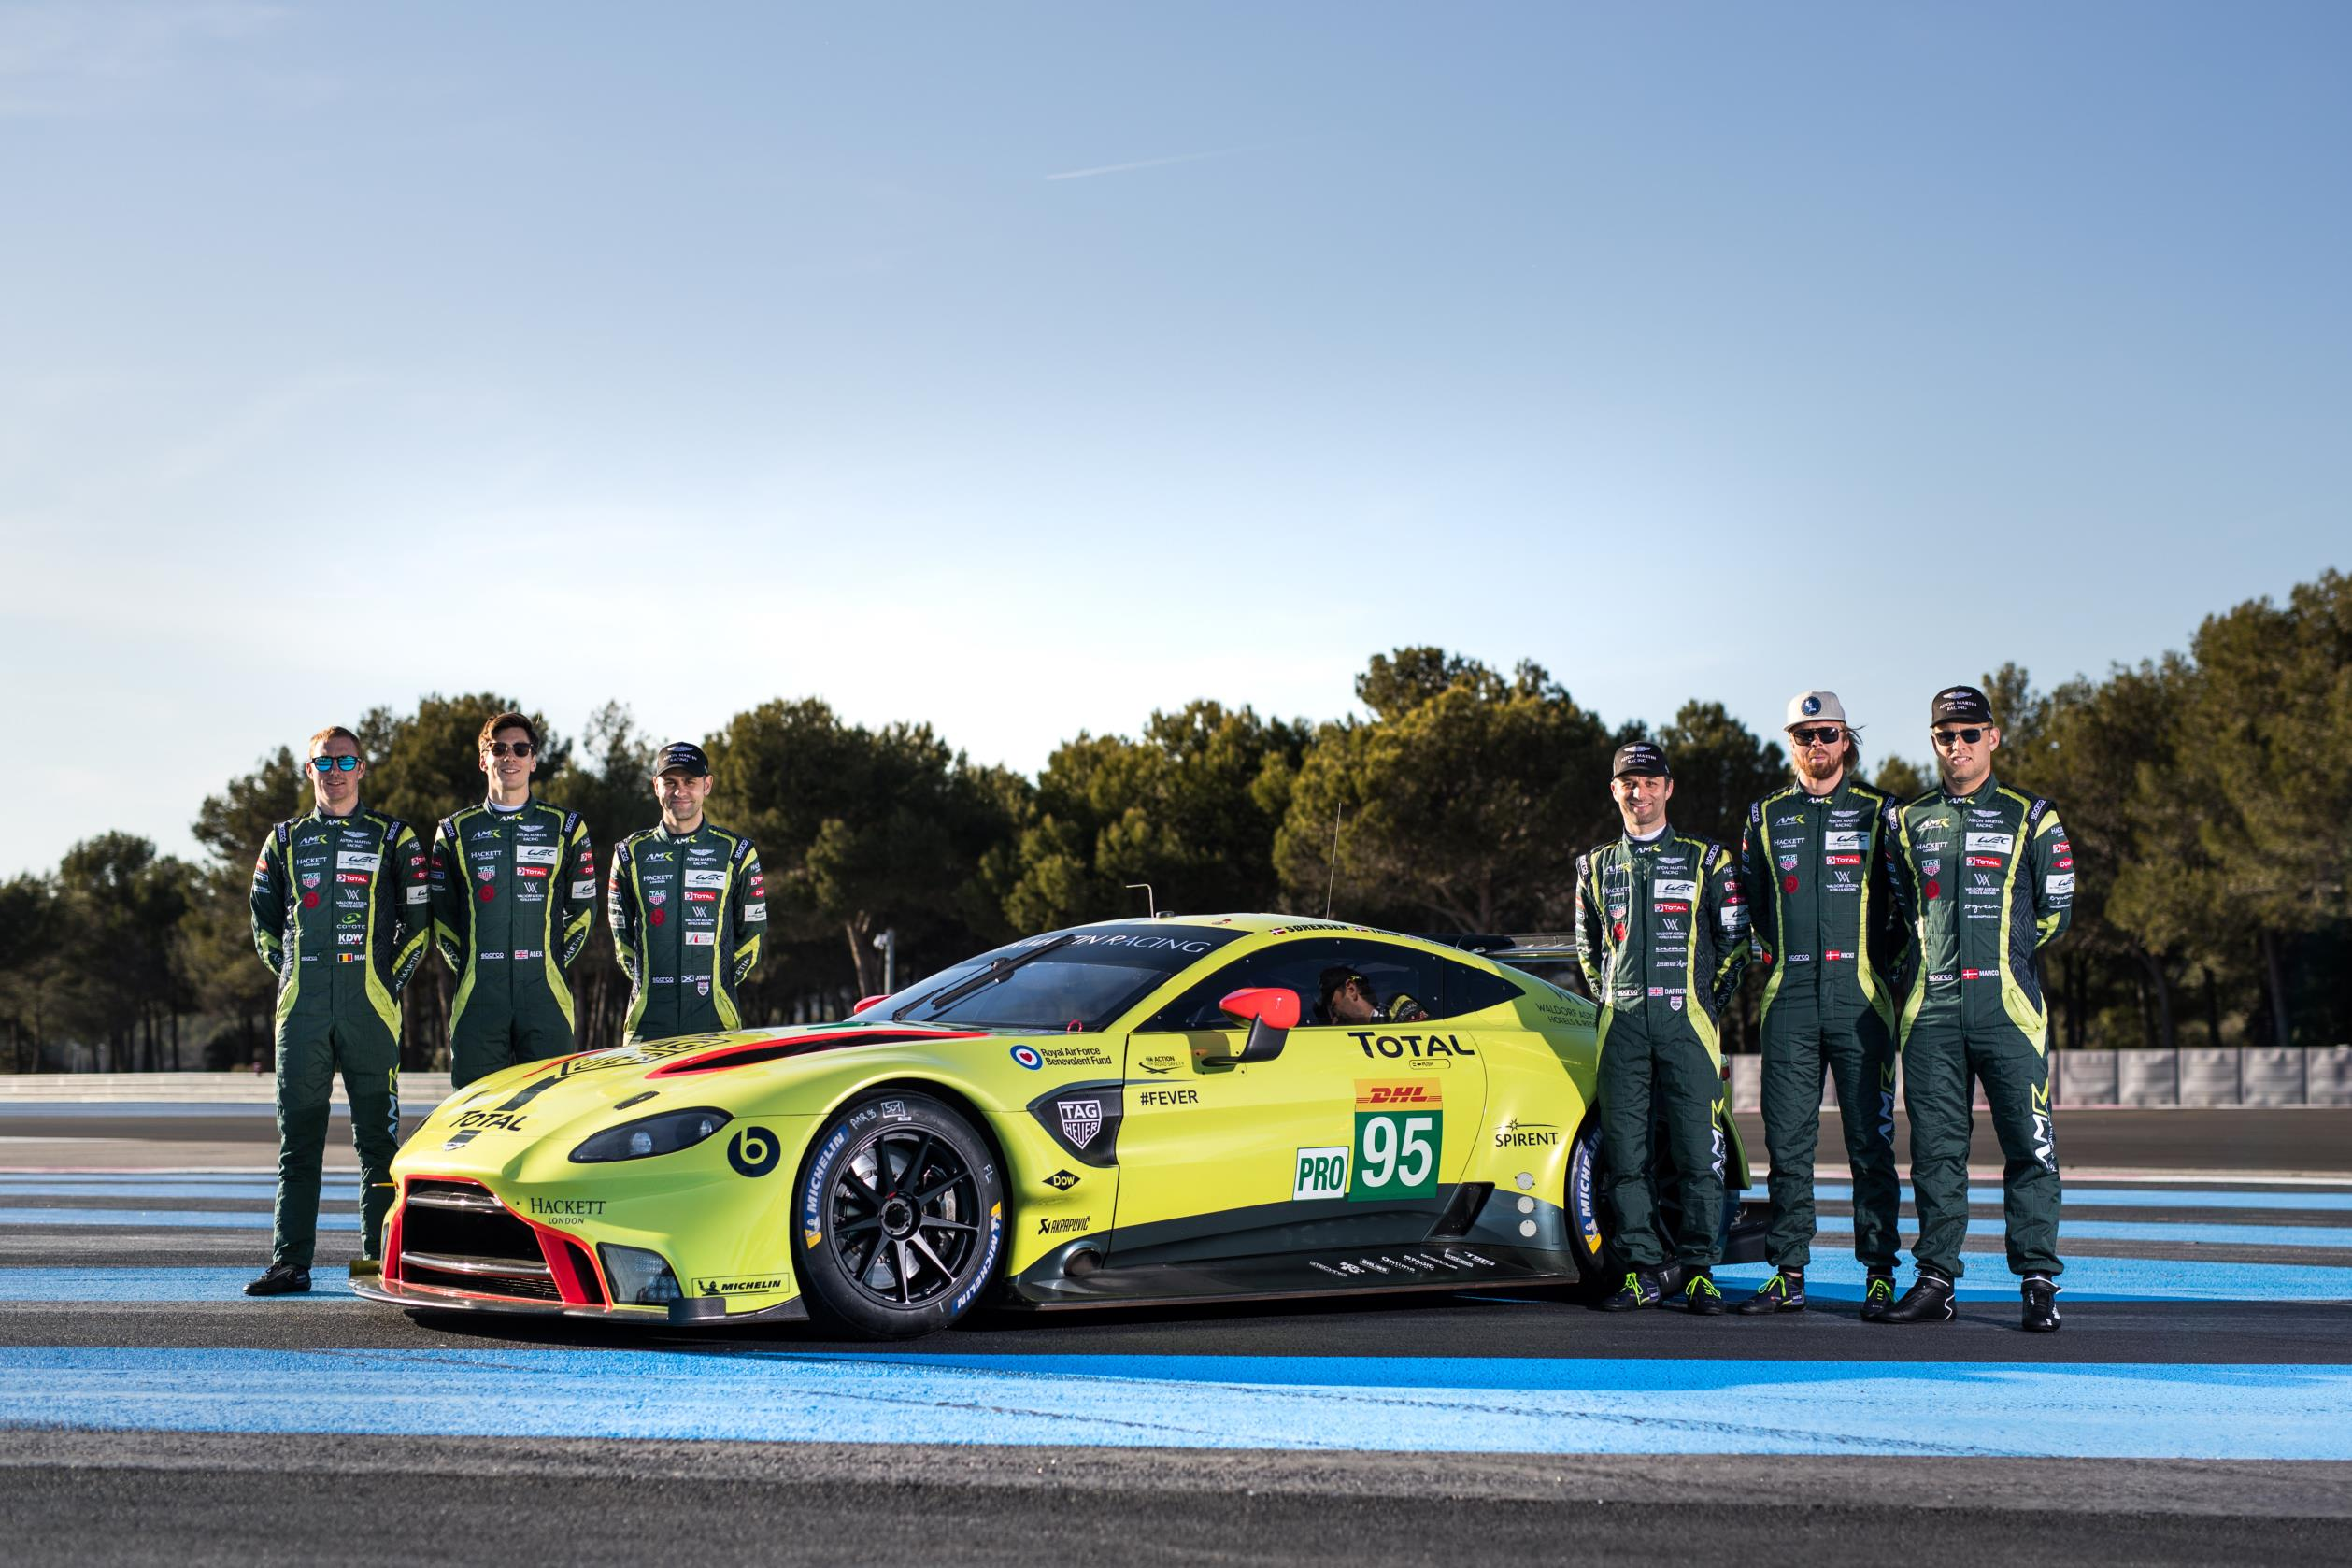 Time To Go To Racing With The New Aston Martin Vantage Gte Endurance Info English Spoken